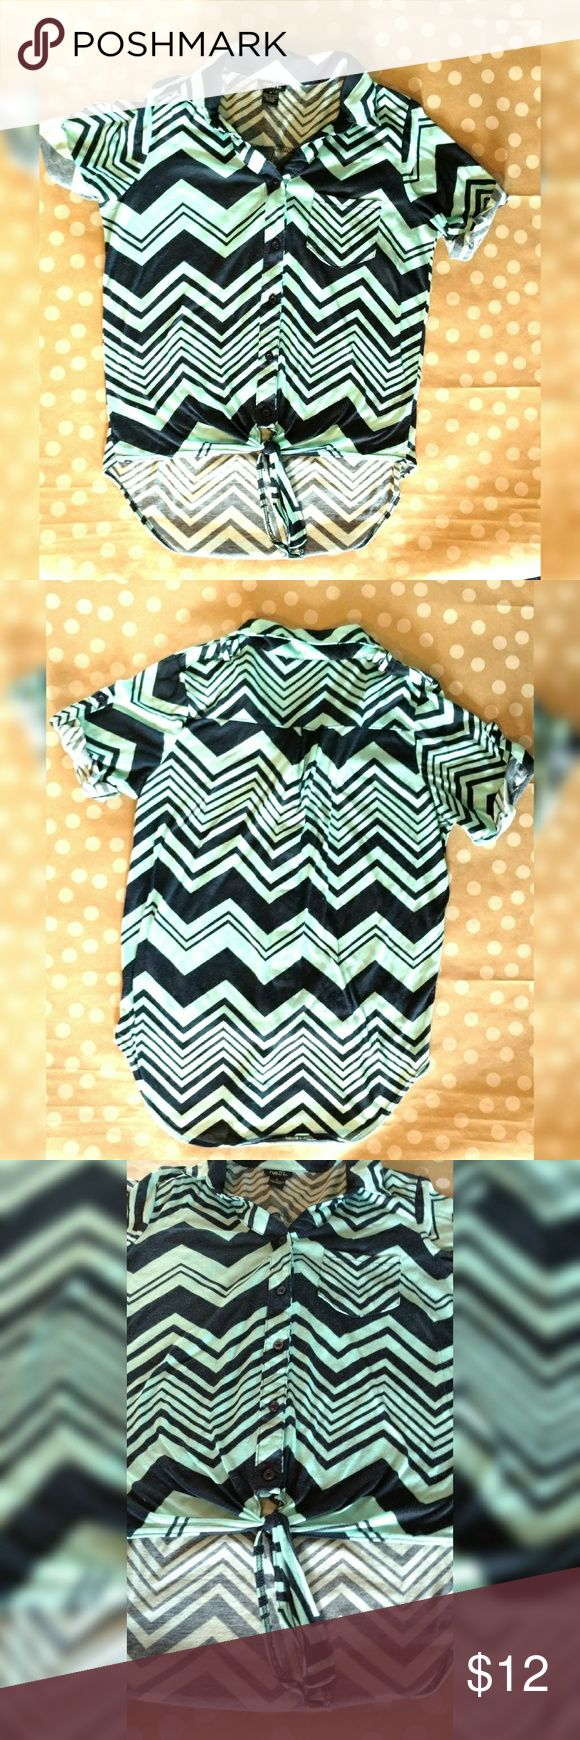 Rue 21 Turquoise and Navy Chevron top Rue 21 chevron top includes a collar and pocket on left side. Five buttons with tie at the bottom. Cute for summer nights! Rue 21 Tops Button Down Shirts